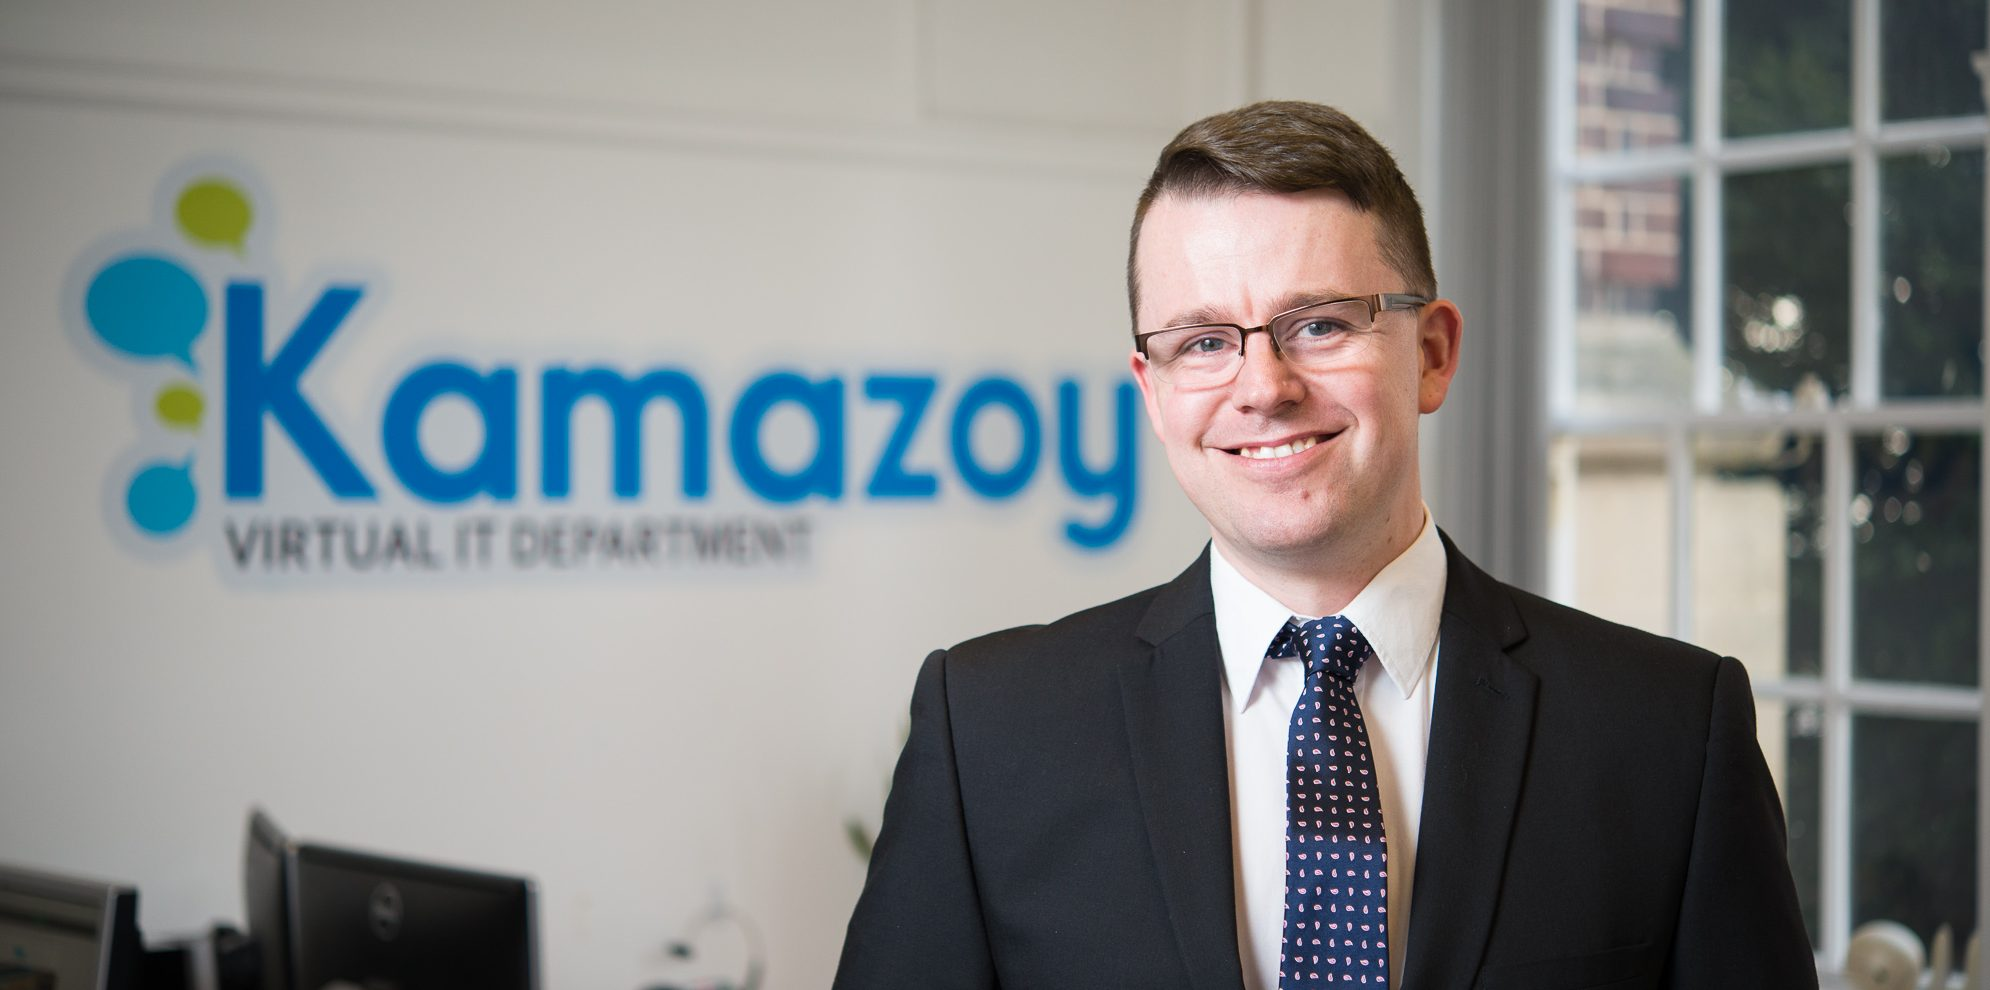 Kamazoy Offers GDPR Guidance